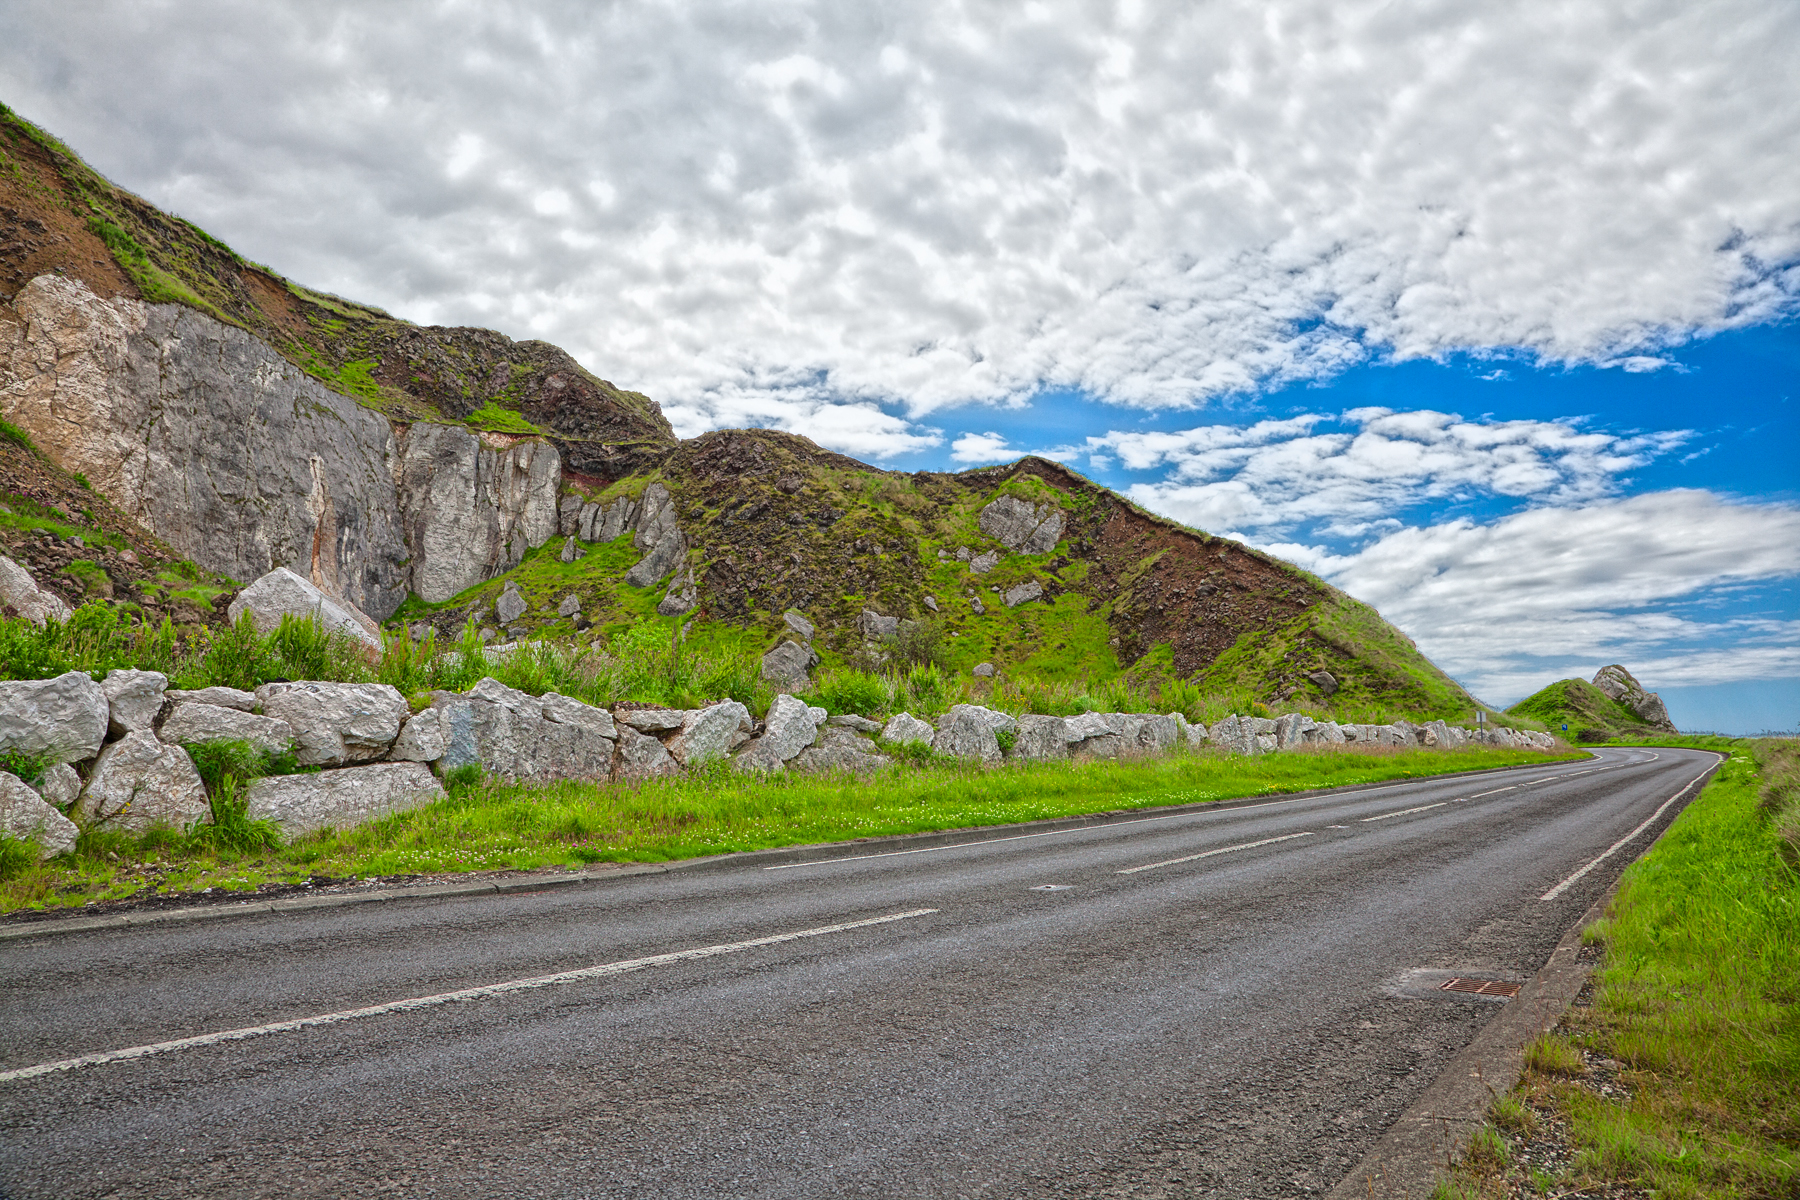 East antrim country road - hdr photo